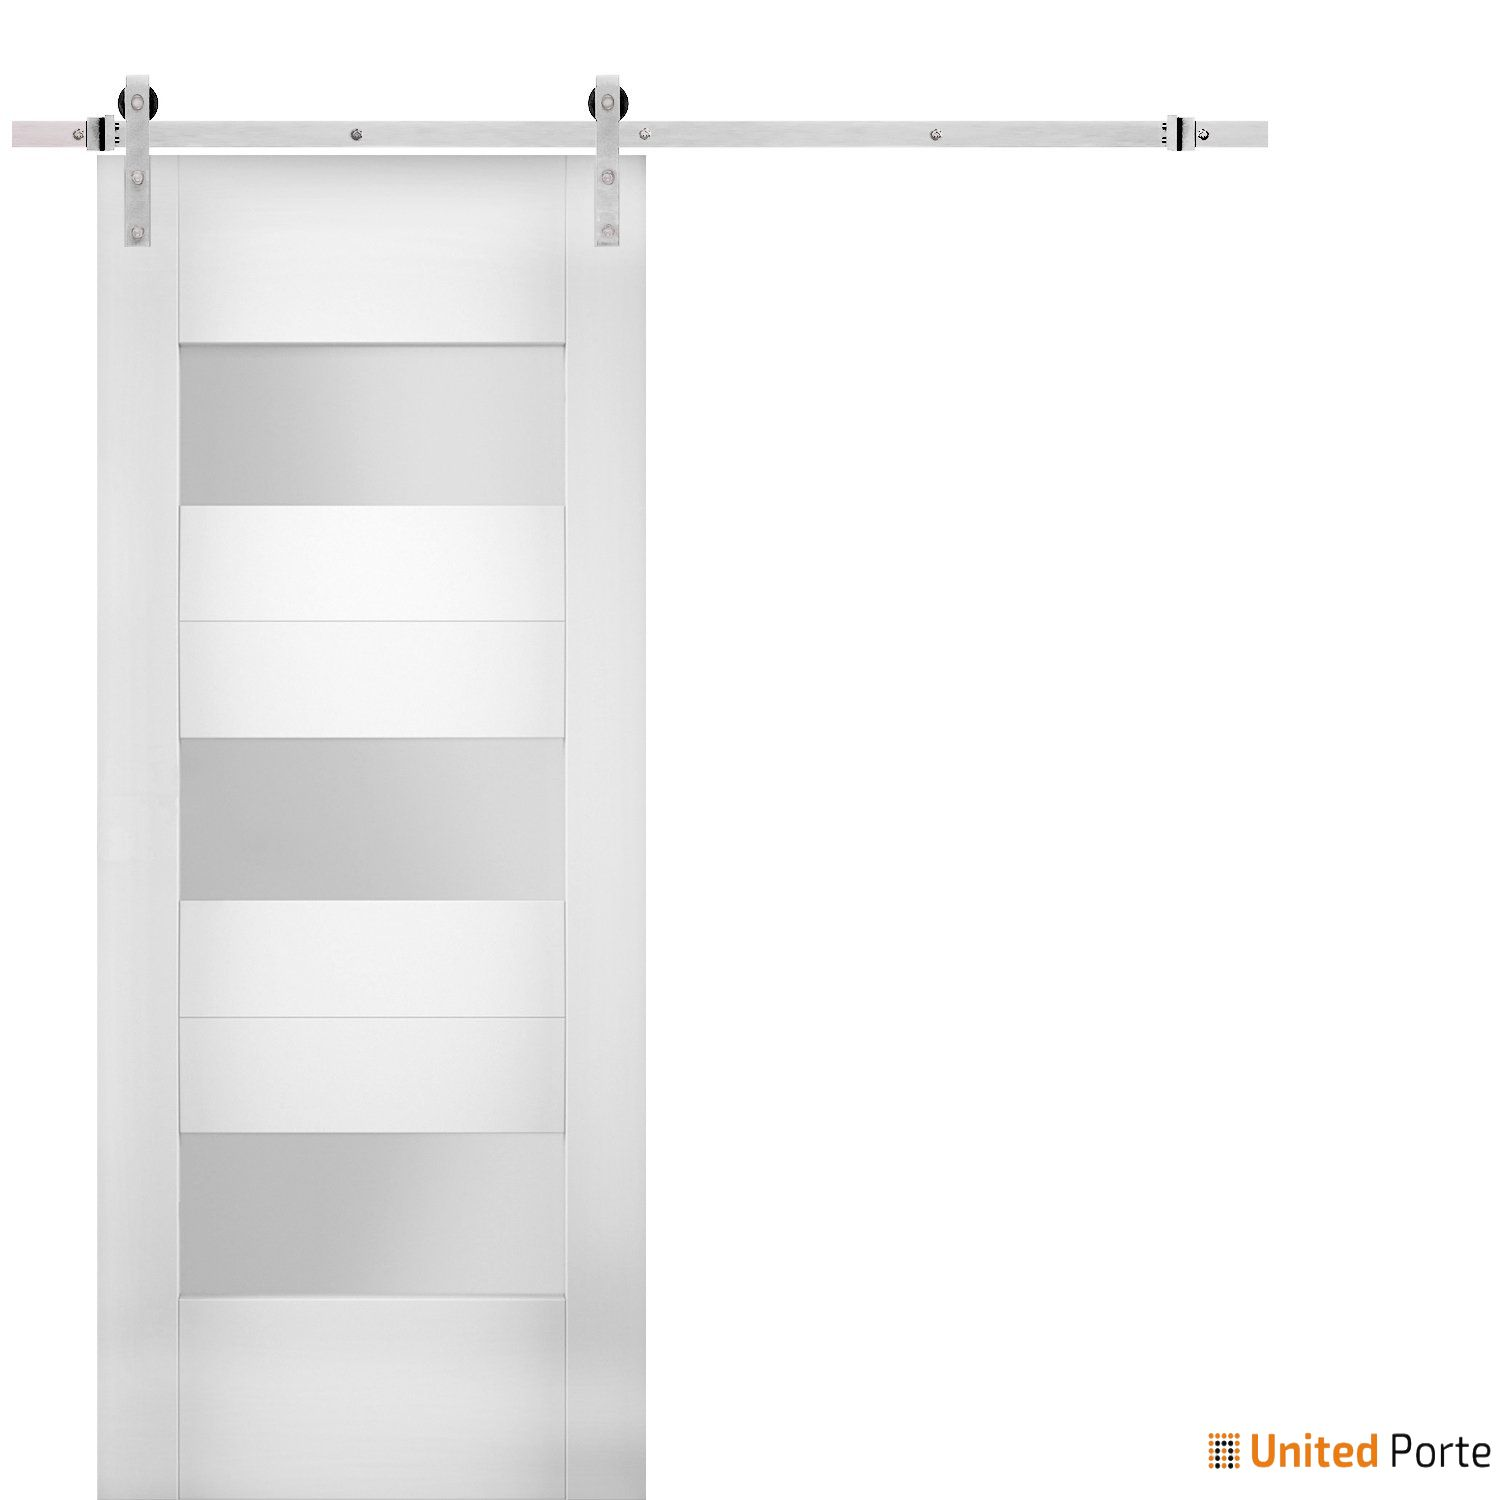 Sete 6003 White Silk Modern Barn Door Opaque Glass with Stainless Hardware | Solid Panel Interior Barn Doors